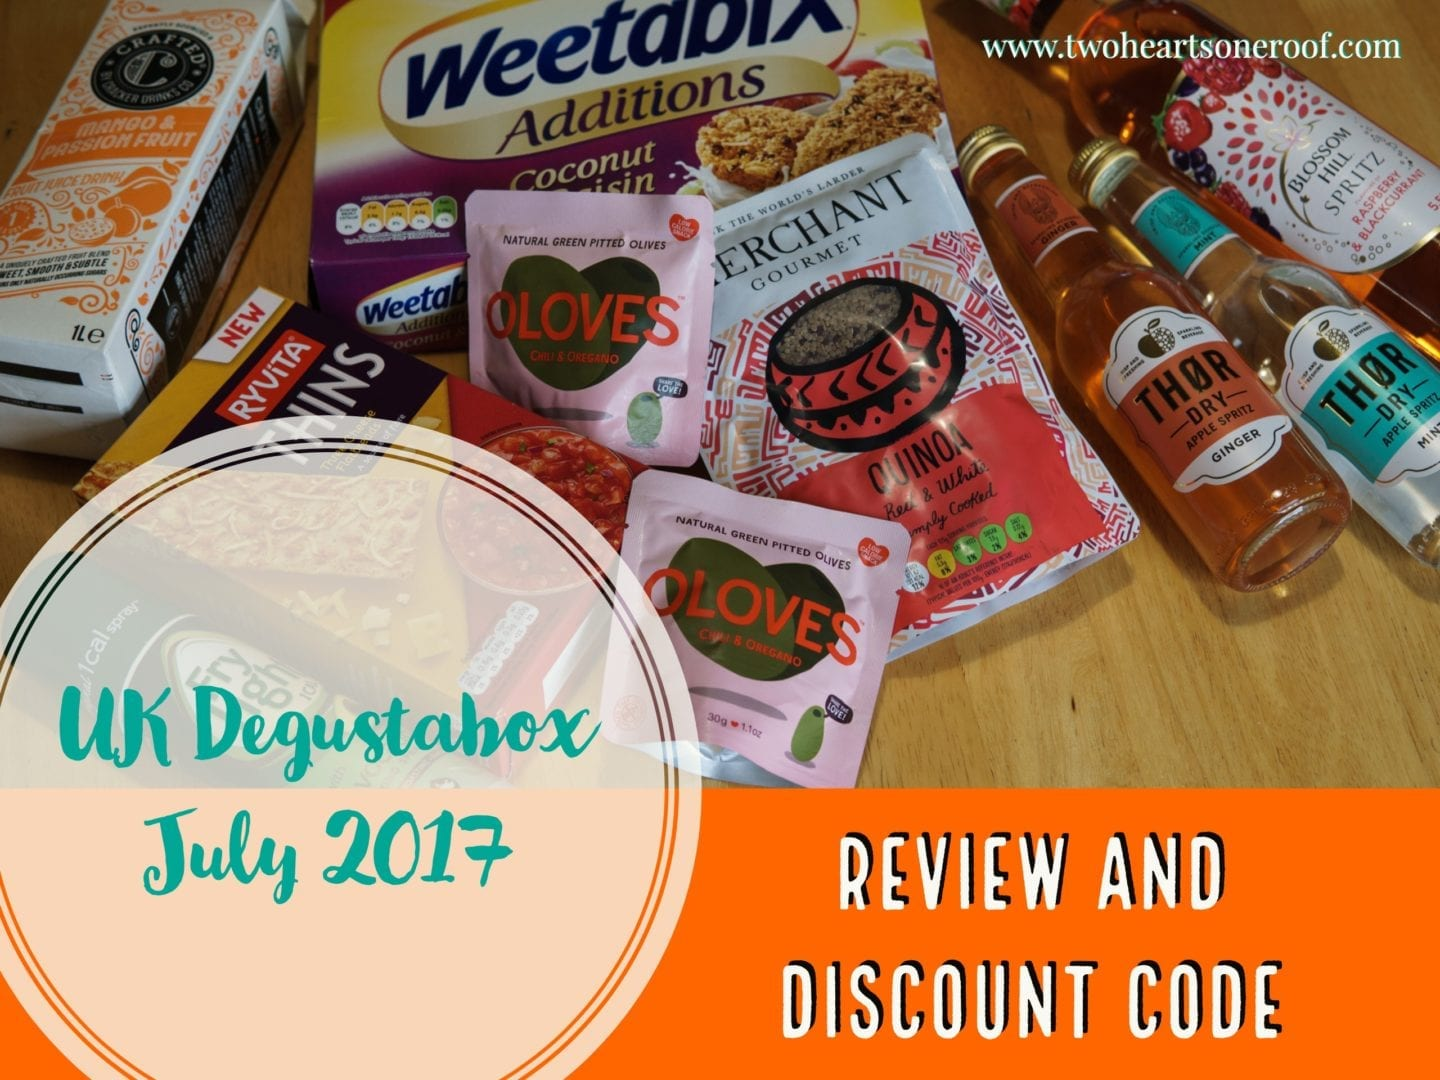 UK Degustabox July 2017 – Review and Discount Code